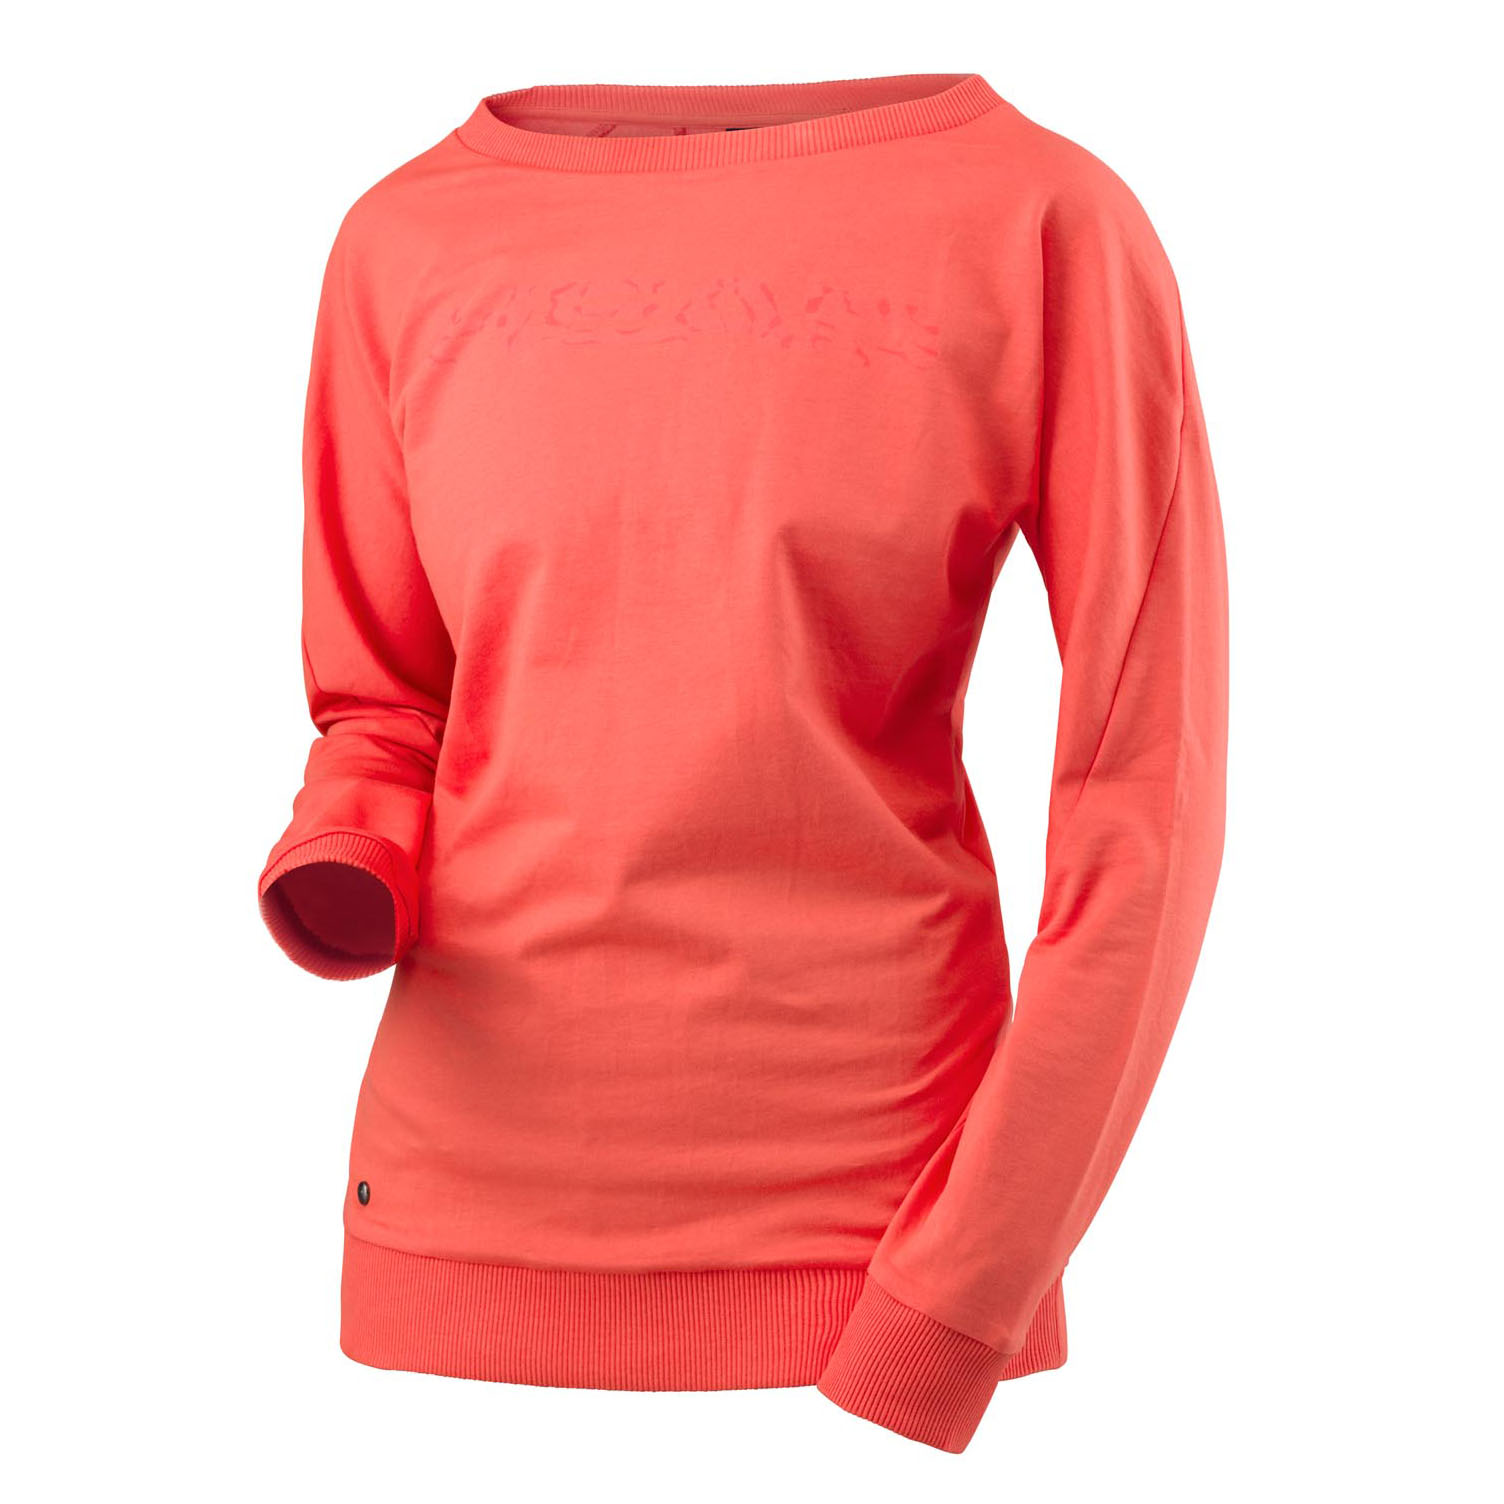 Head Transition Sweat Ladies Long Sleeve Top - Coral, S